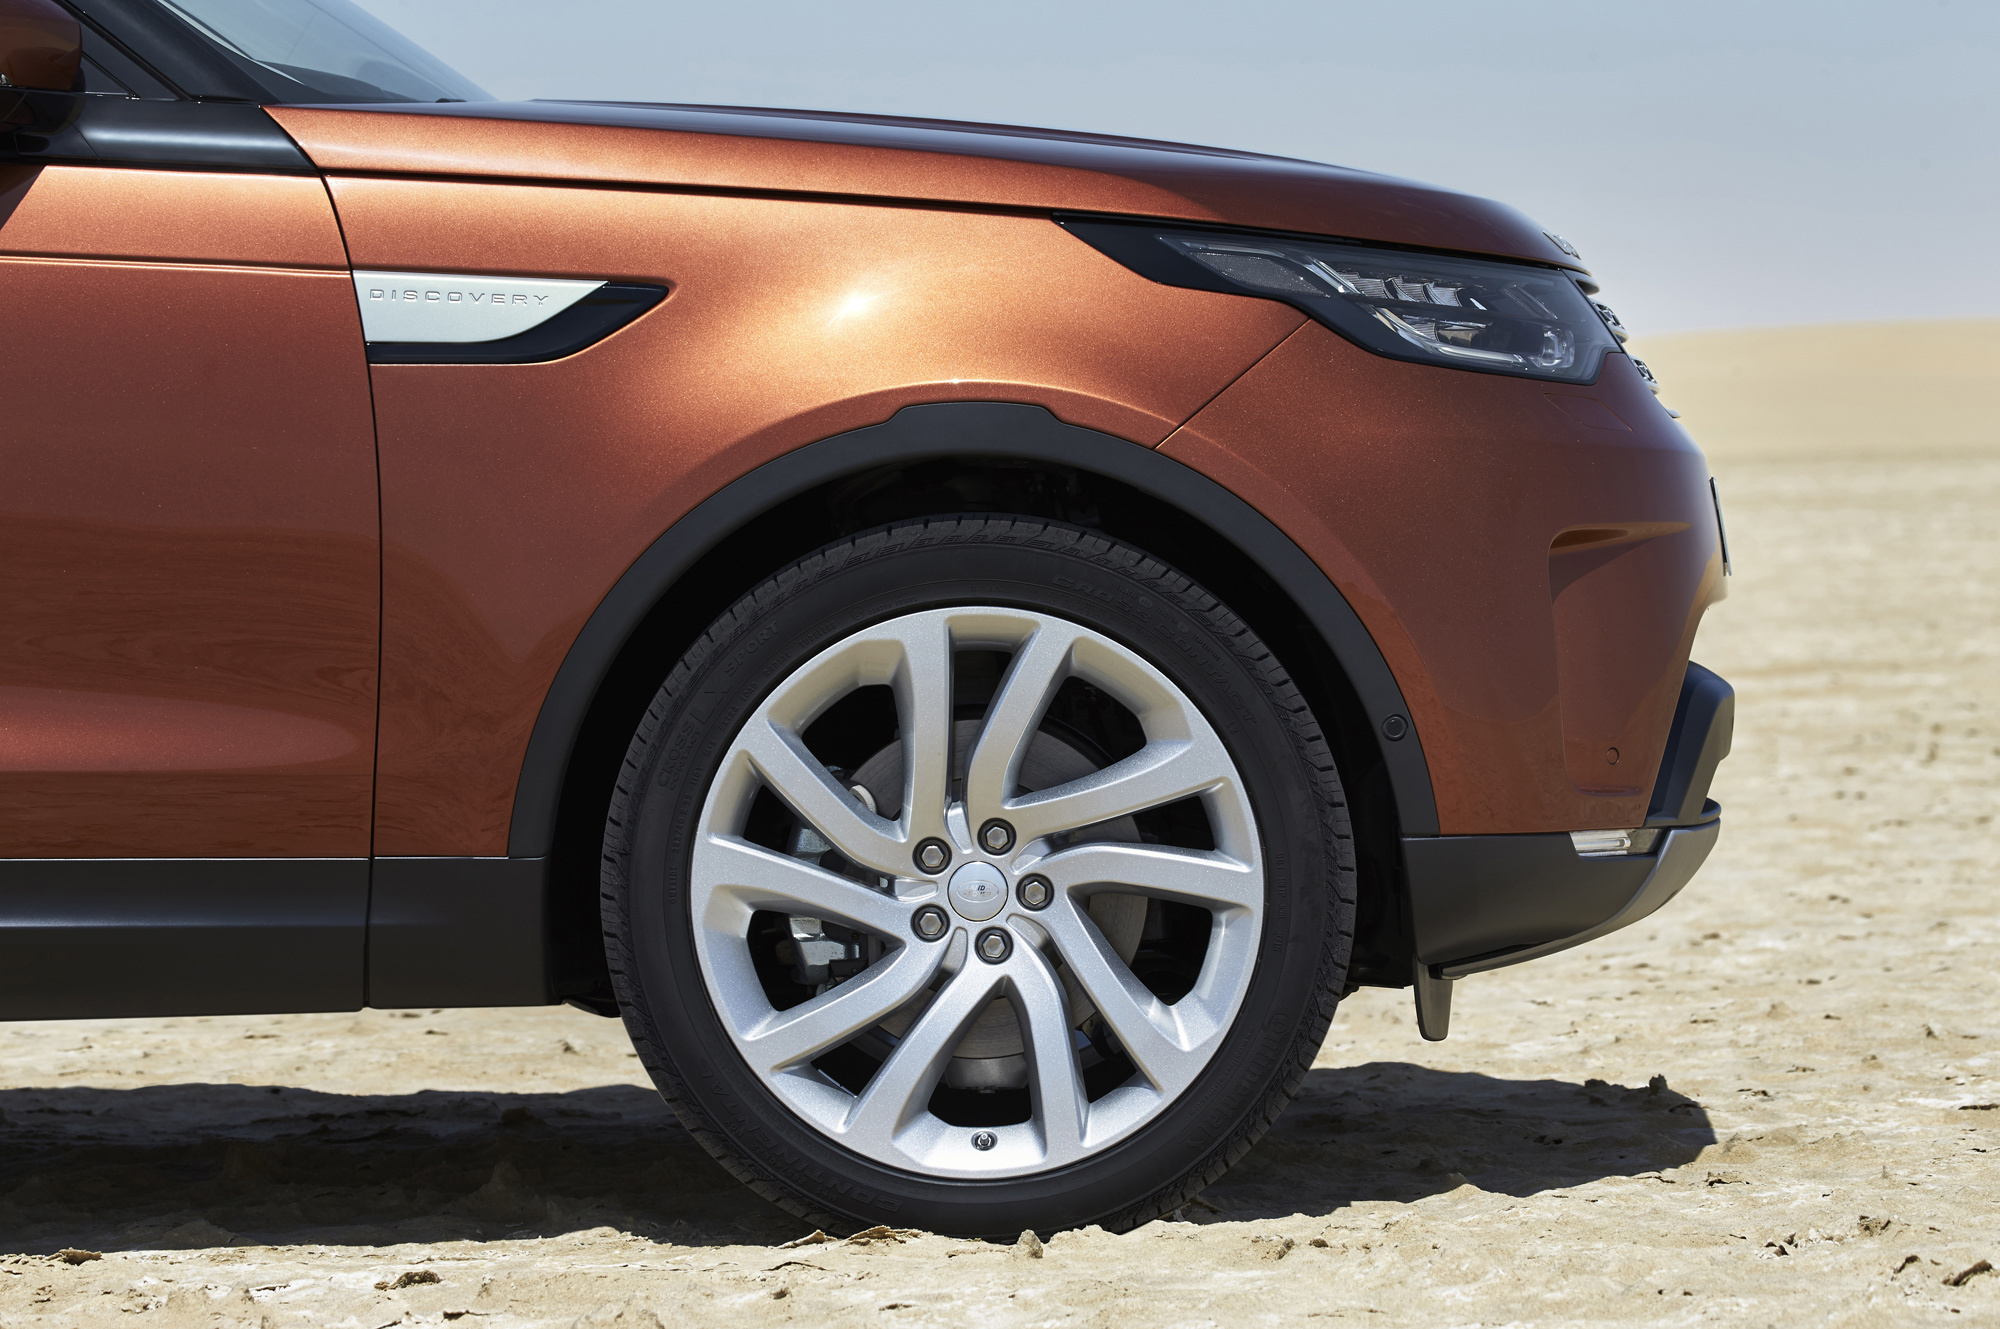 Land Rover Discovery High Quality Wallpapers